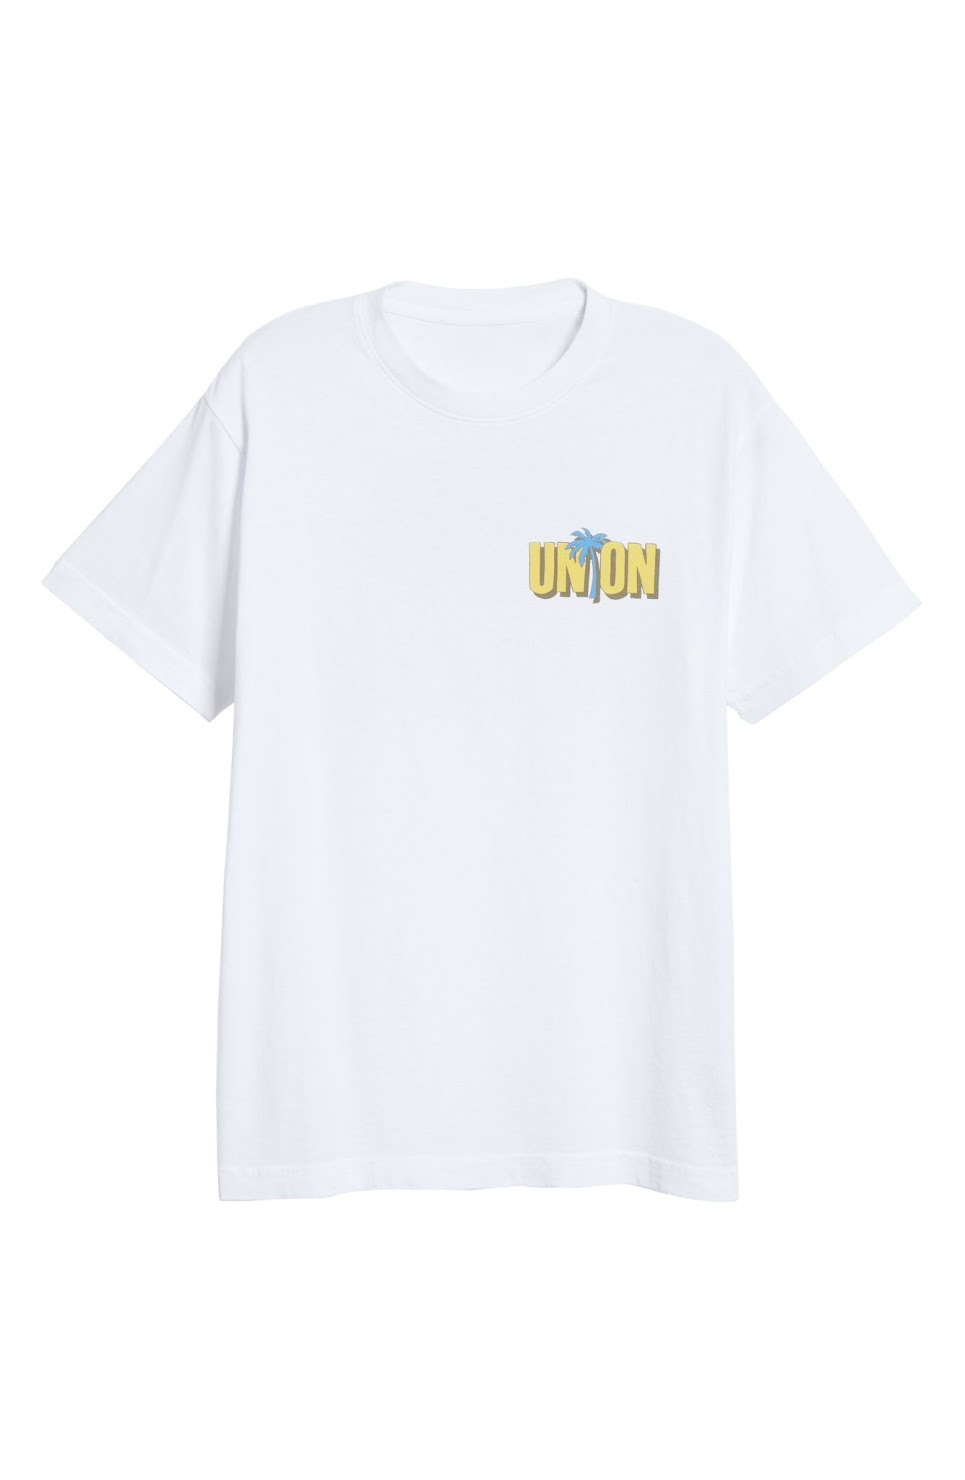 Union_Wha Gwaan Tee_White_$42.jpeg